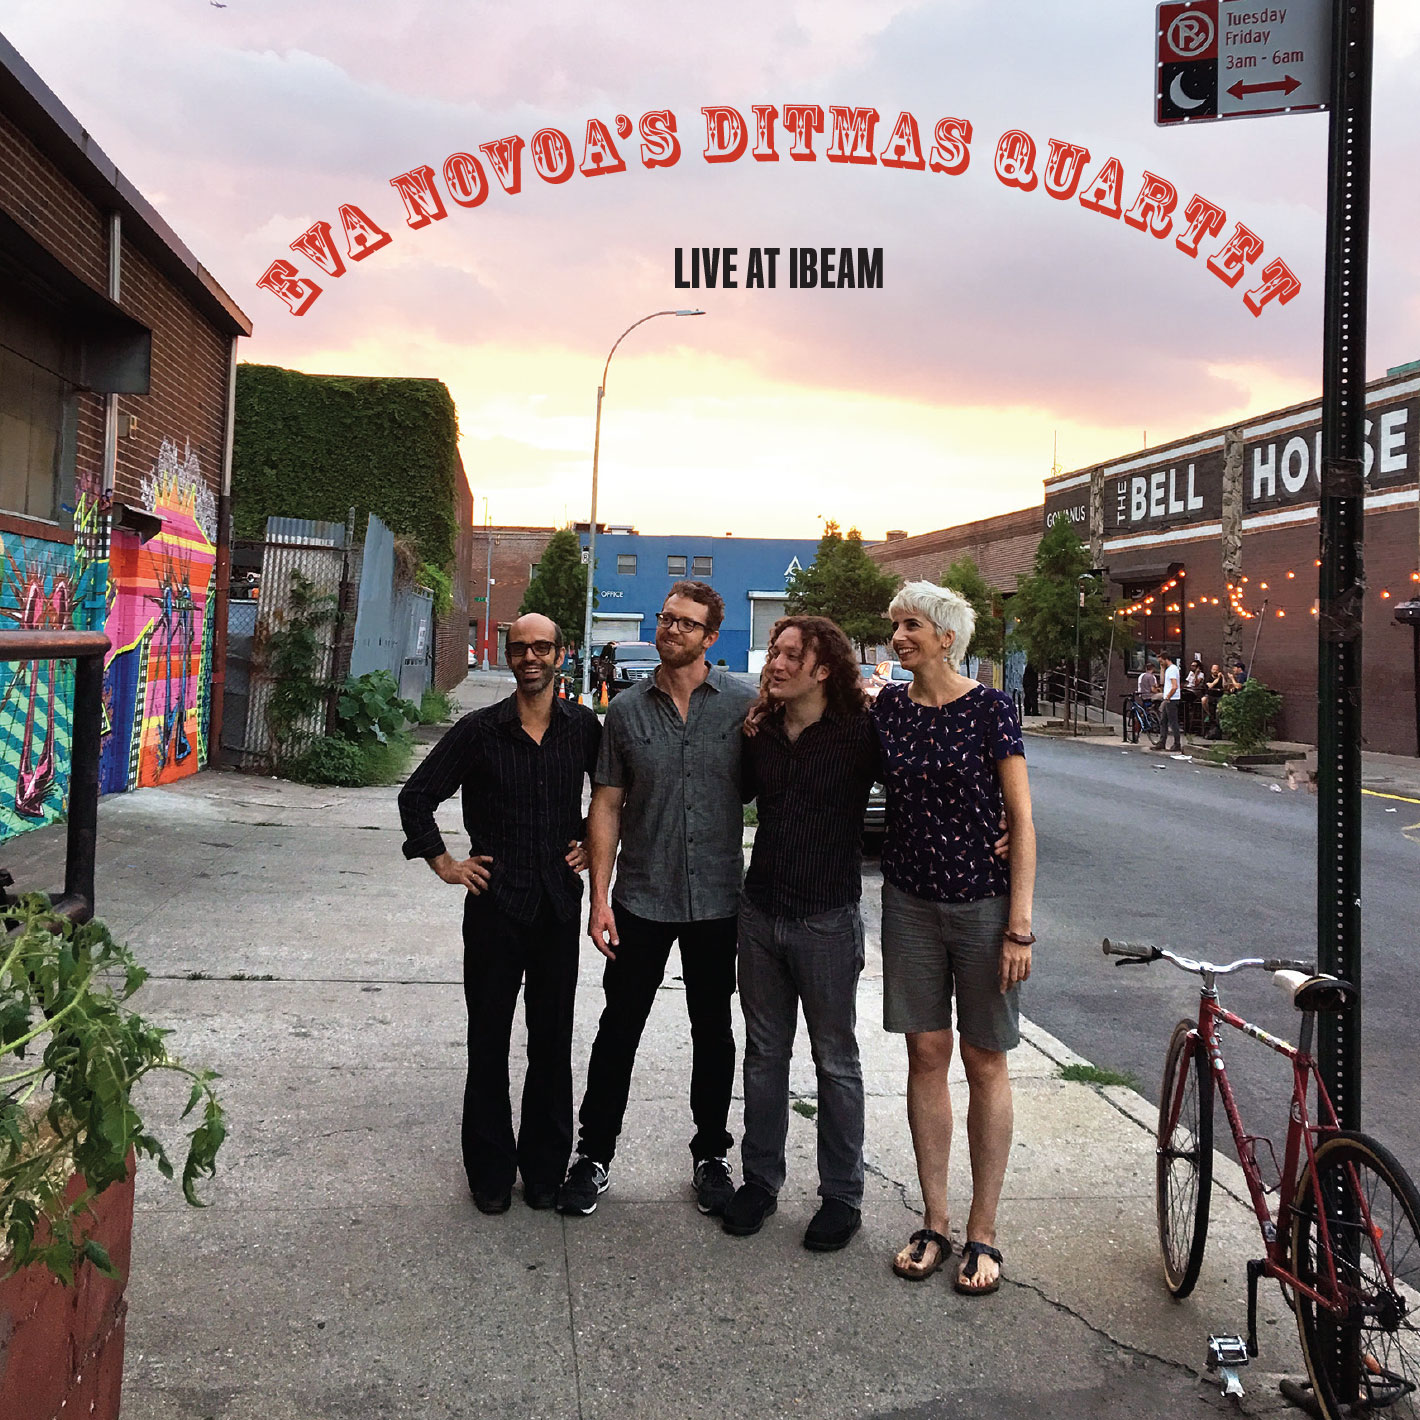 So excited my next 4th album as a leader and Ditmas Quartet's 2nd album as a band is coming out shortly next month on Fresh Sound New Talent! July 15th.   Live At iBeam  by Ditmas Quartet:  Michaël Attias, alto & baritone saxophones  Eva Novoa, piano, compositions & Chinese gongs  Max Johnson, bass  Jeff Davis, drums  Recorded live at iBeam in Brooklyn by Jeremy Loucas  Mixed and mastered at Sear Sound in New York by Jeremy Loucas   BUY HERE!!